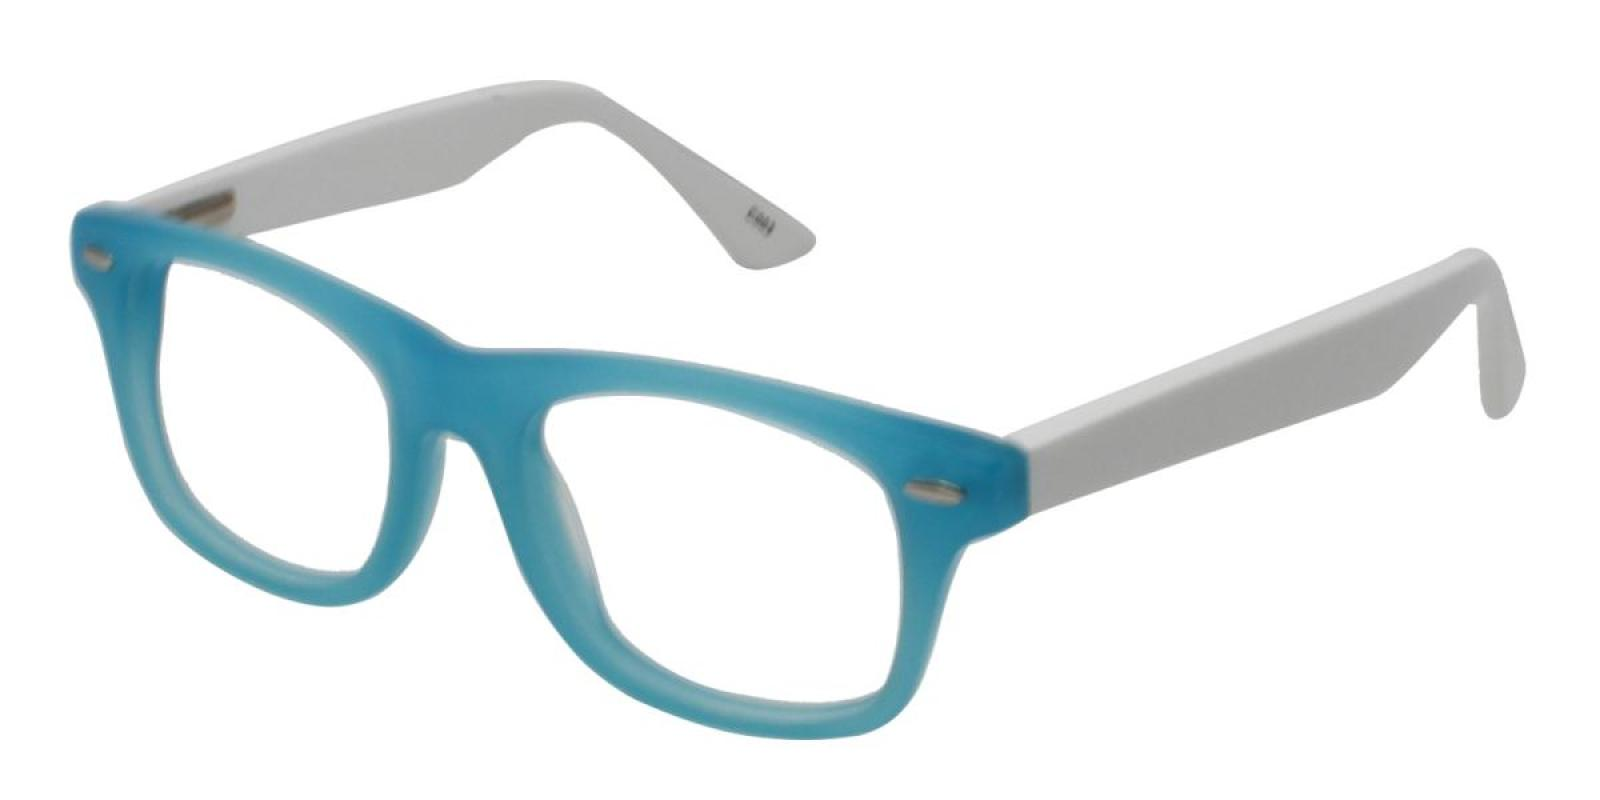 Bristol-Blue-Square-Acetate-Eyeglasses-additional1